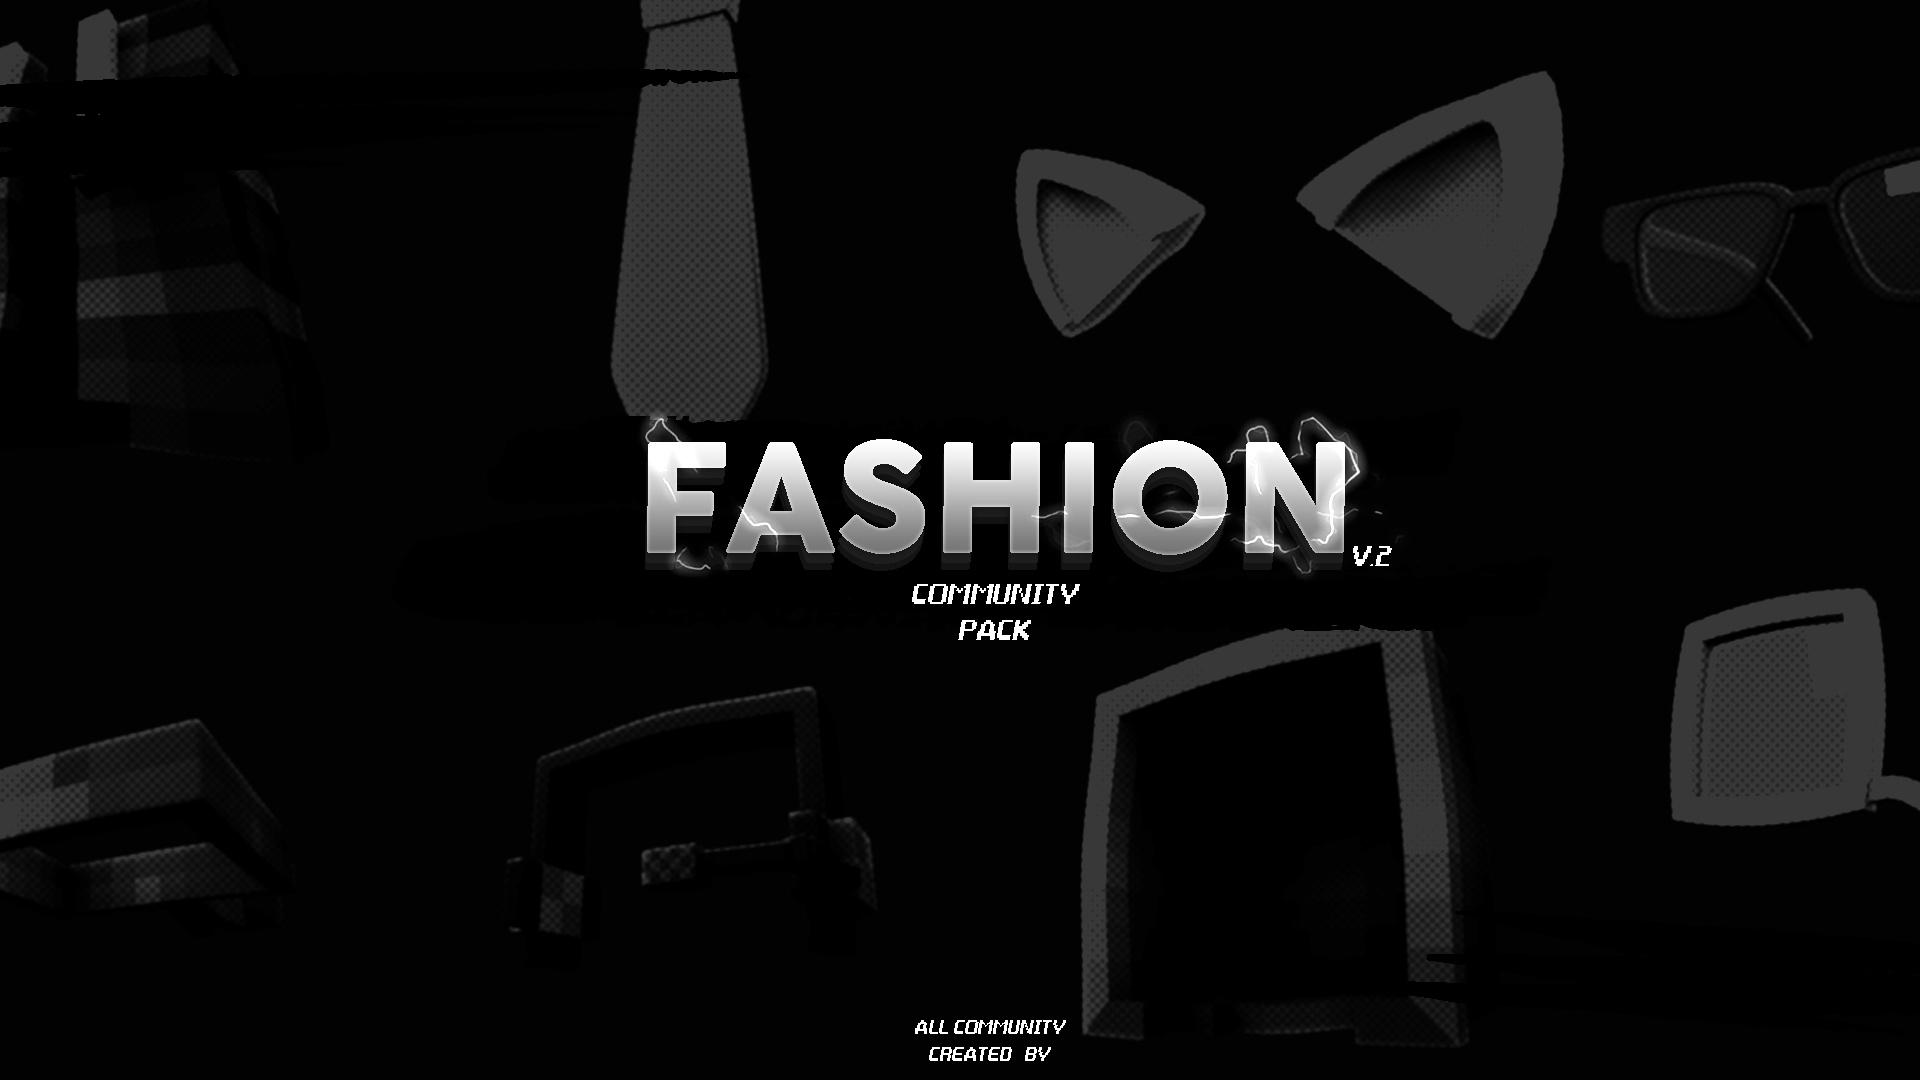 Fashion Community Pack V.2 » Model Pack